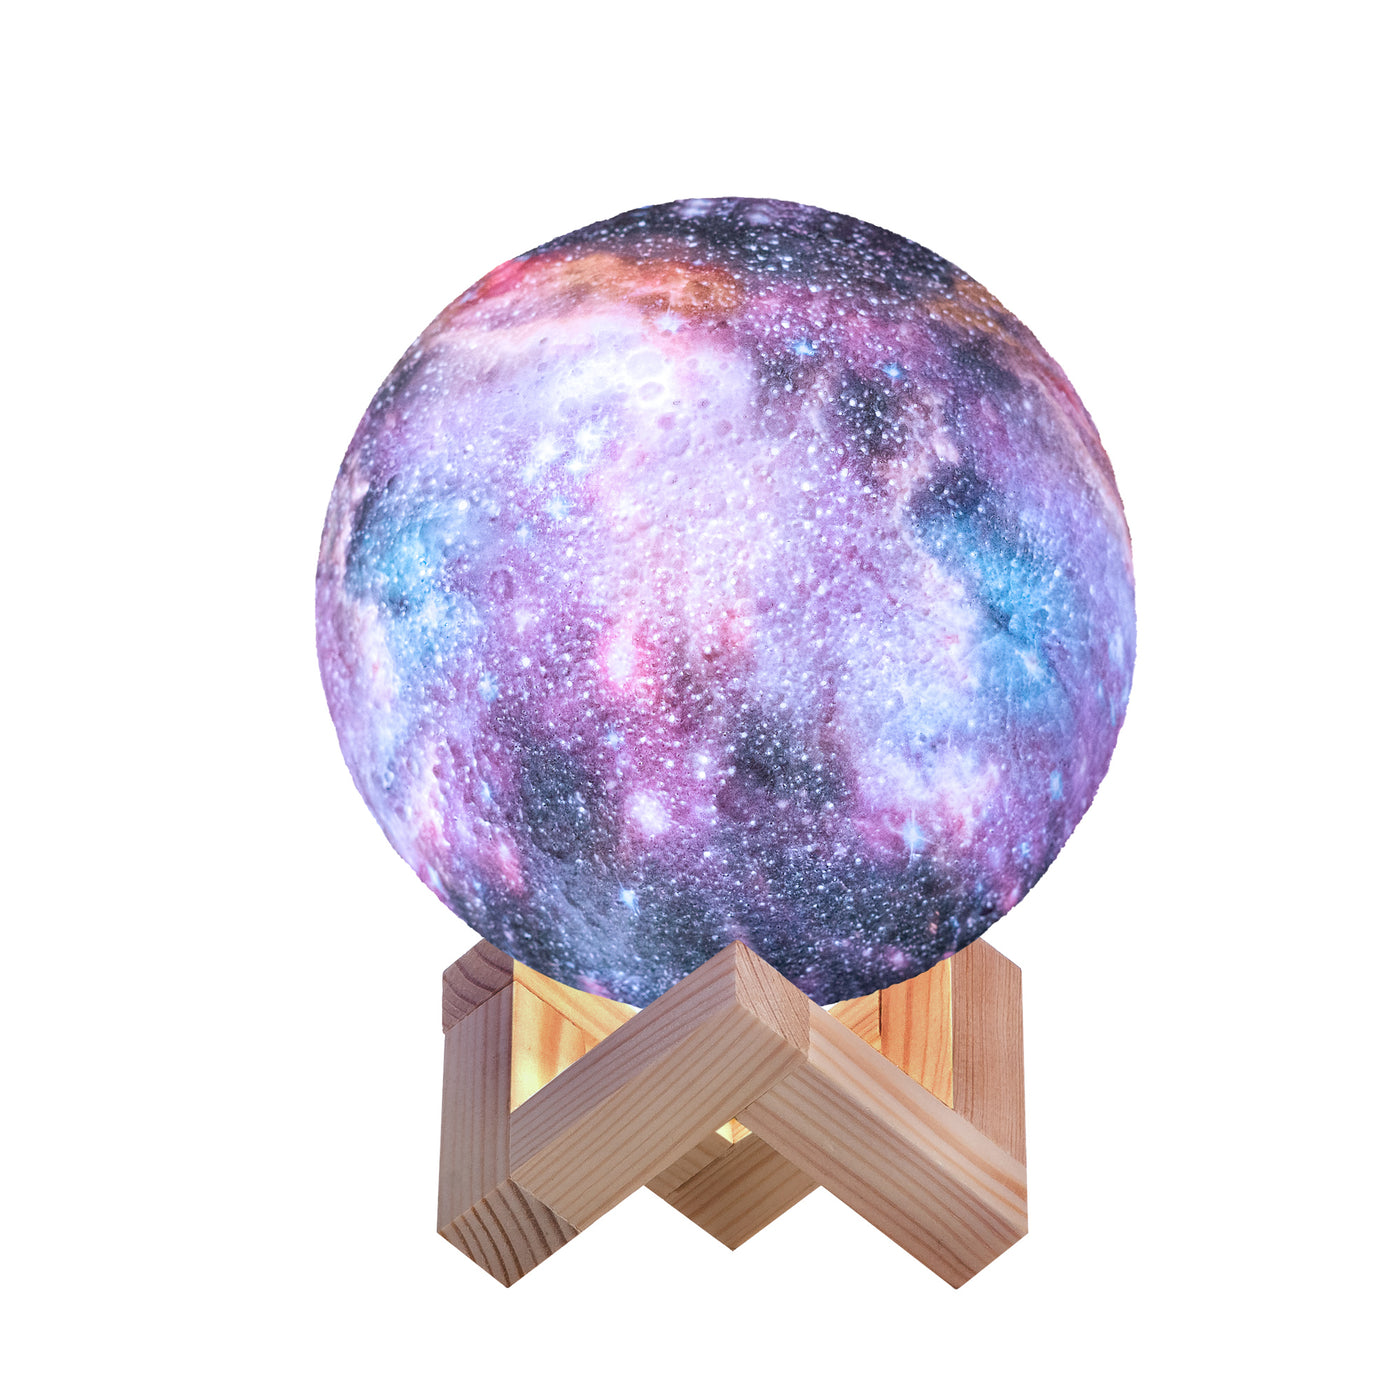 3D Galaxy Lamp with 16 Colors, Wooden Stand and Remote Control, GL-16C-4.7